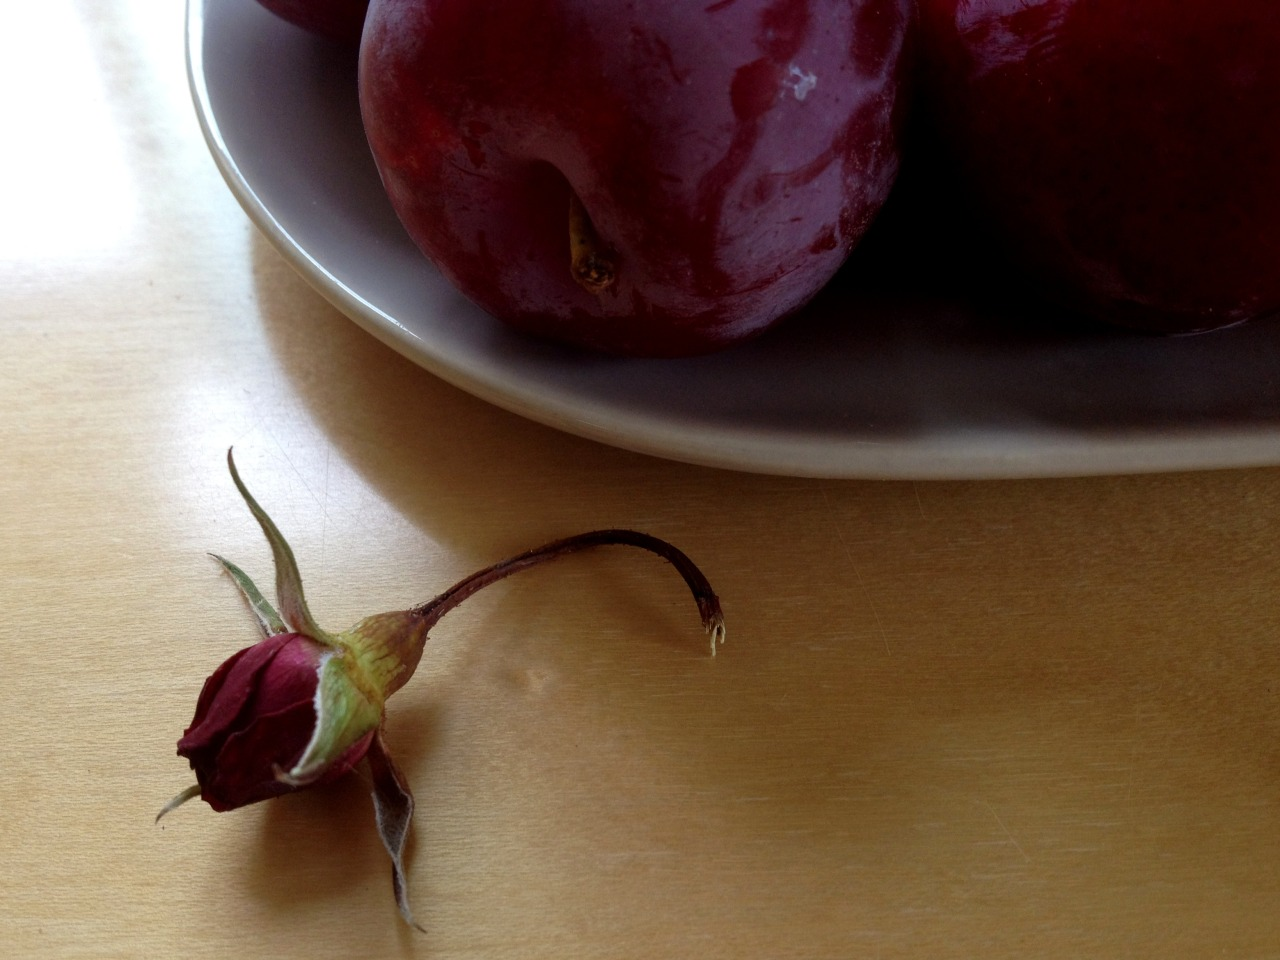 Summer fruit and a flower